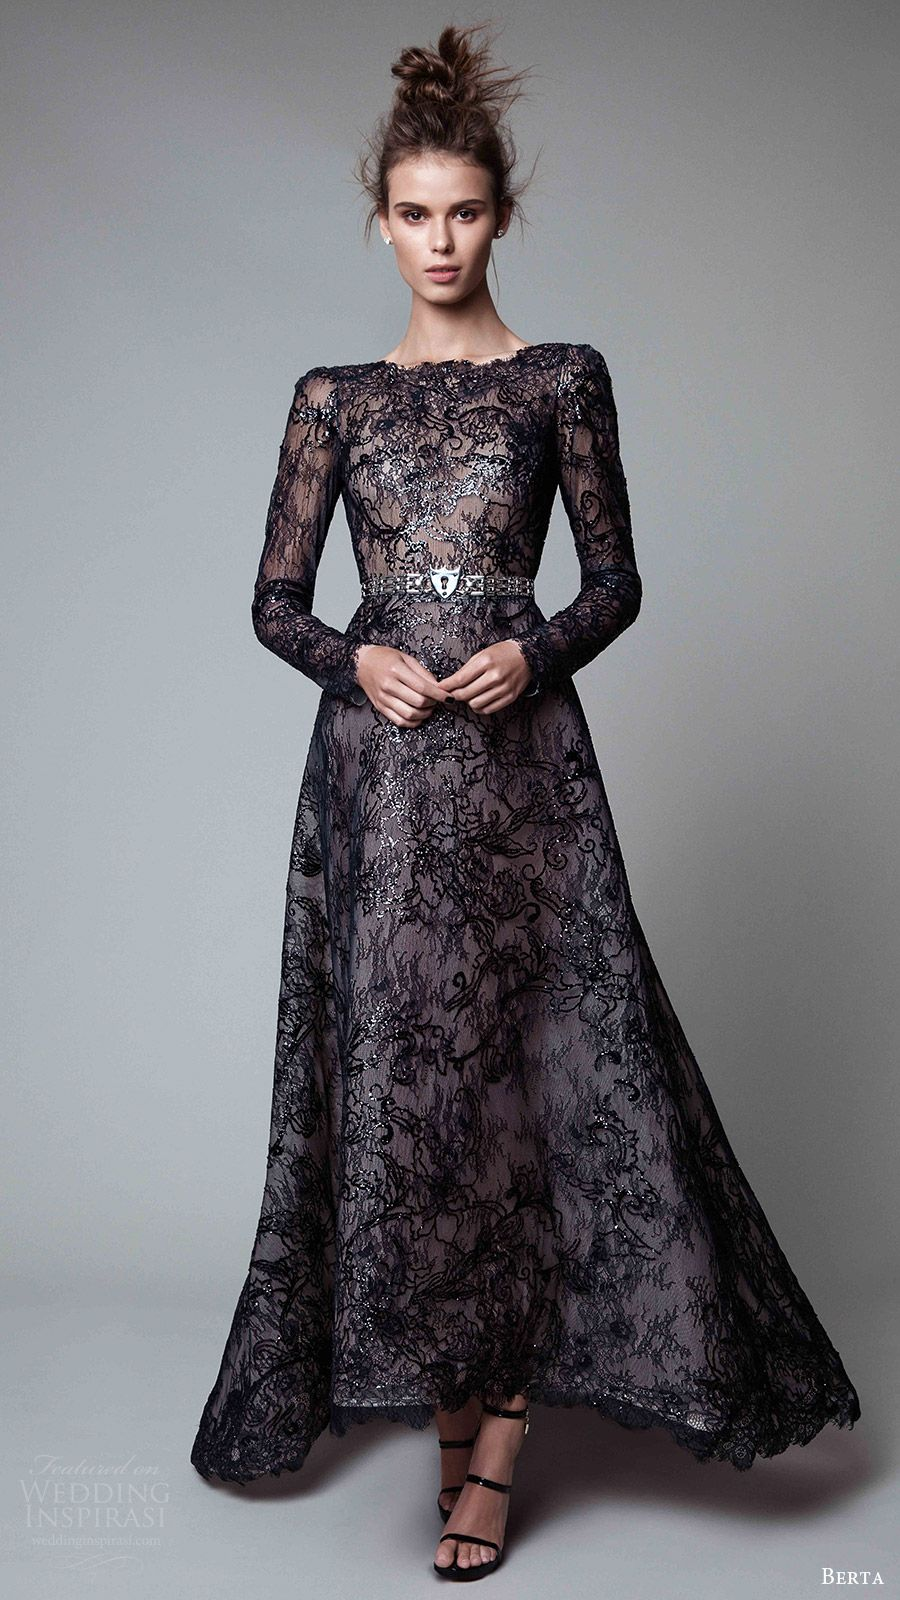 Berta fall readytowear collection jewel black and gowns